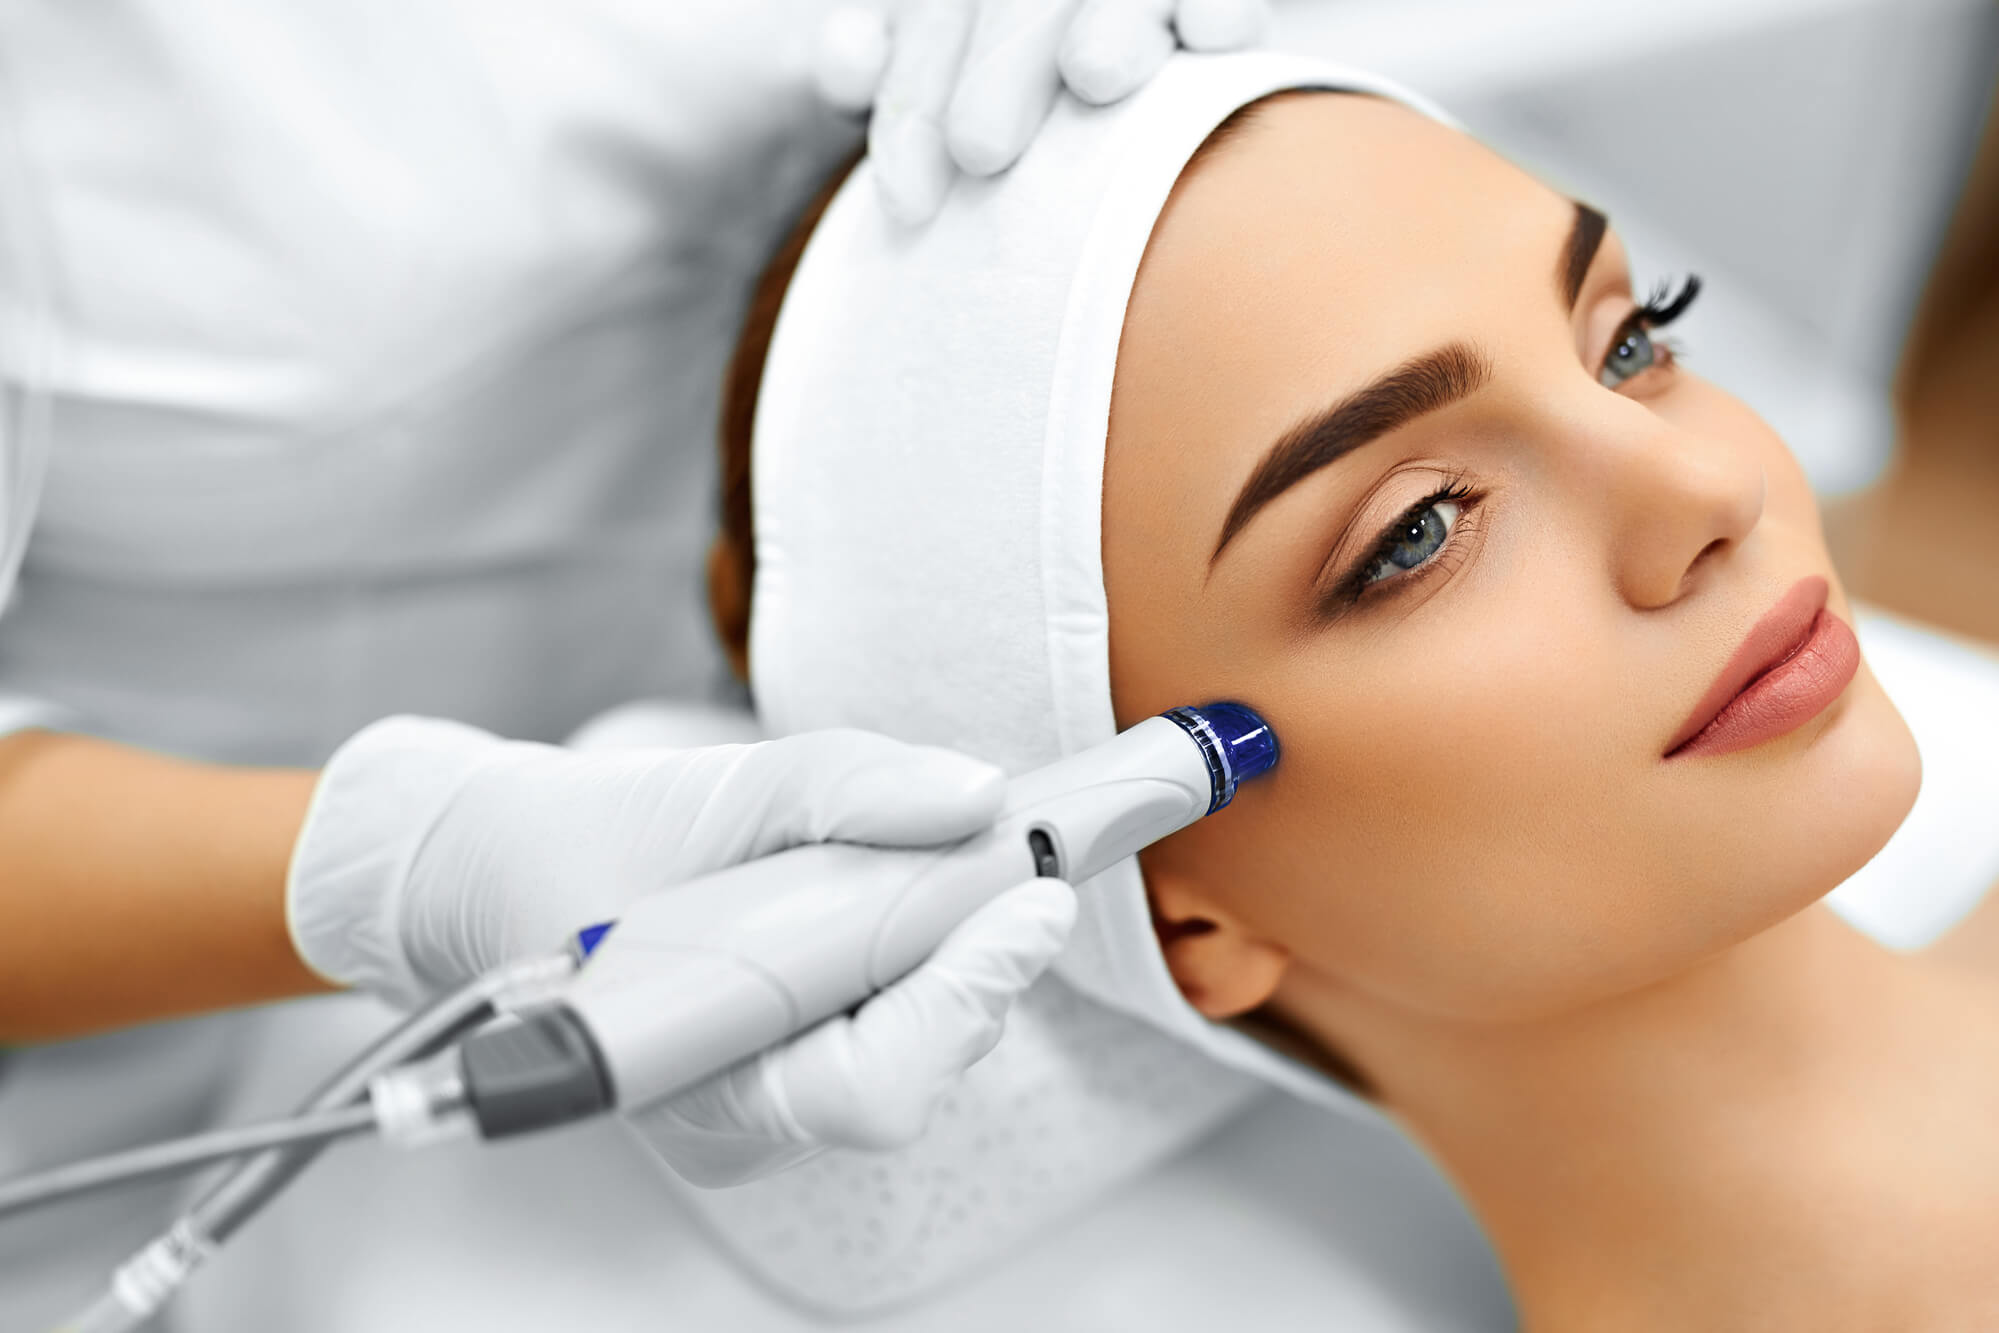 where is the best hydrafacial miami?